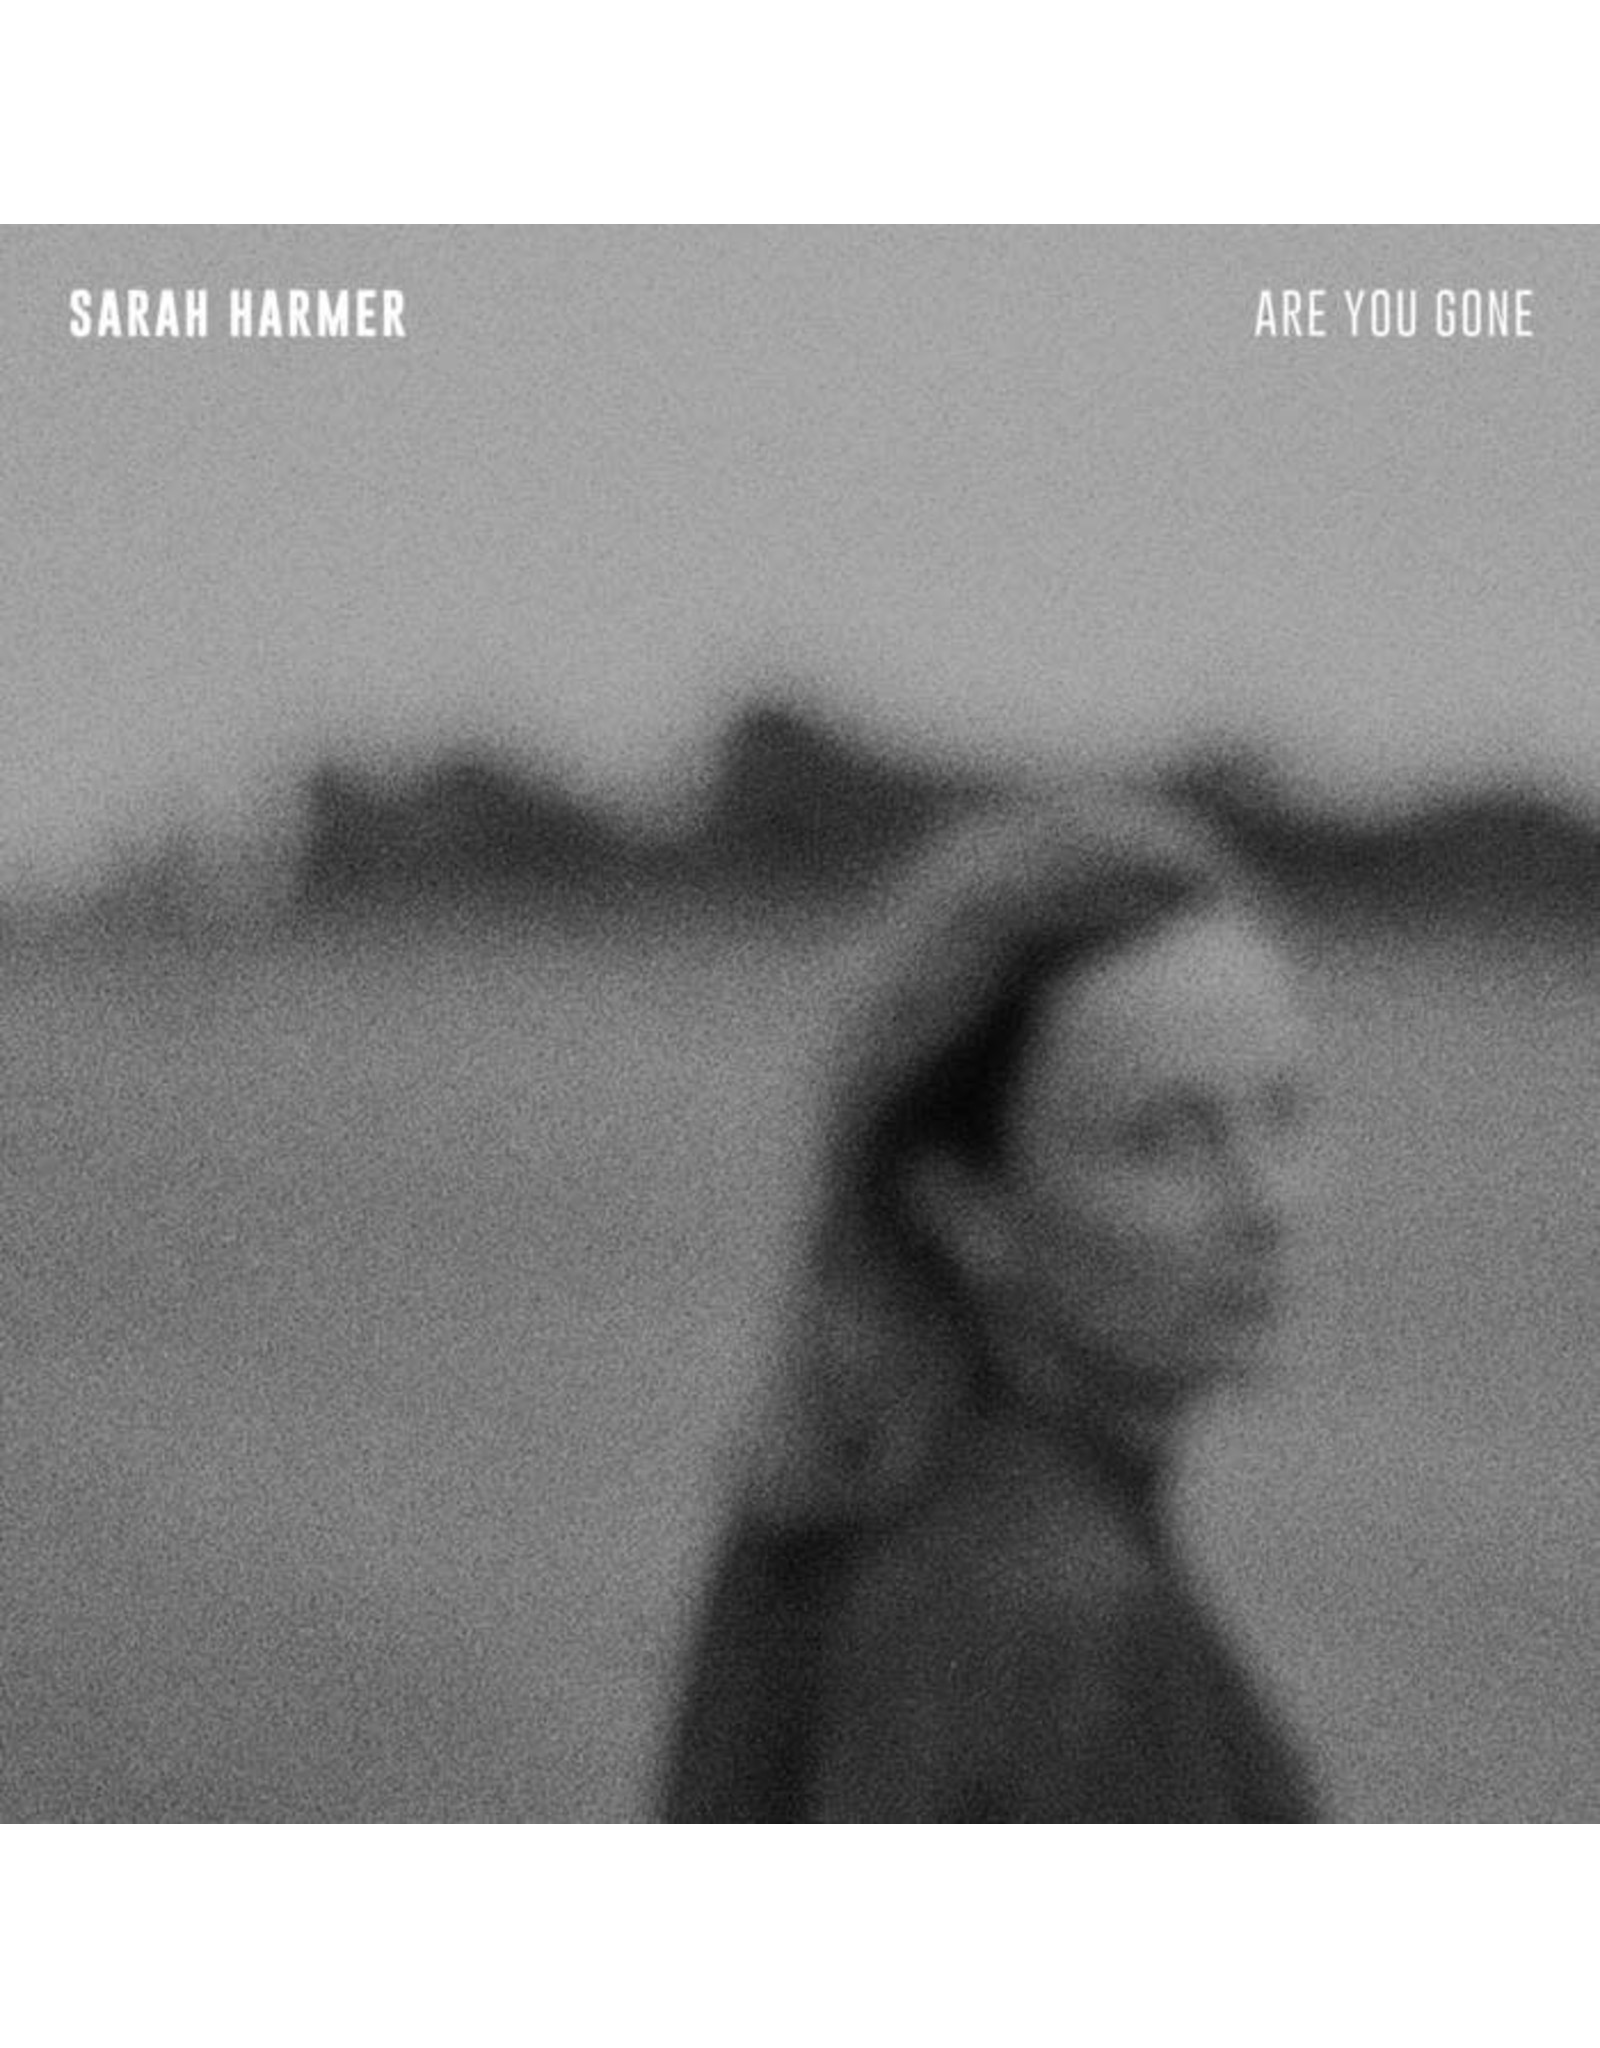 Harmer, Sarah - Are You Gone LP